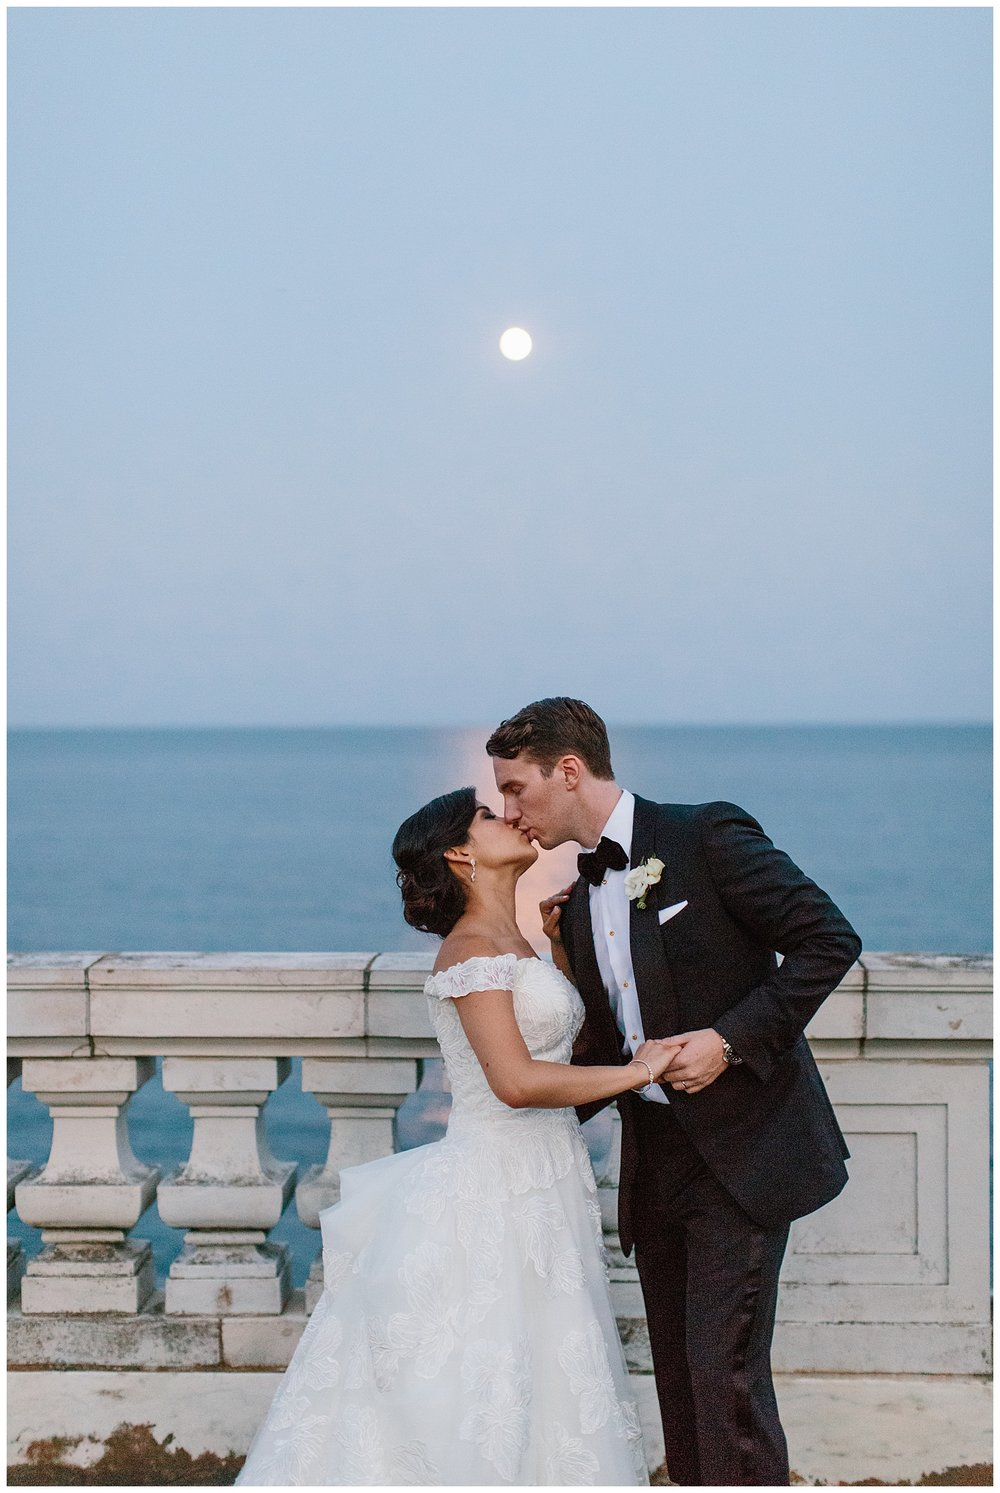 Stephen_Nathalie_Rosecliff_Mansion_Wedding_030.jpeg